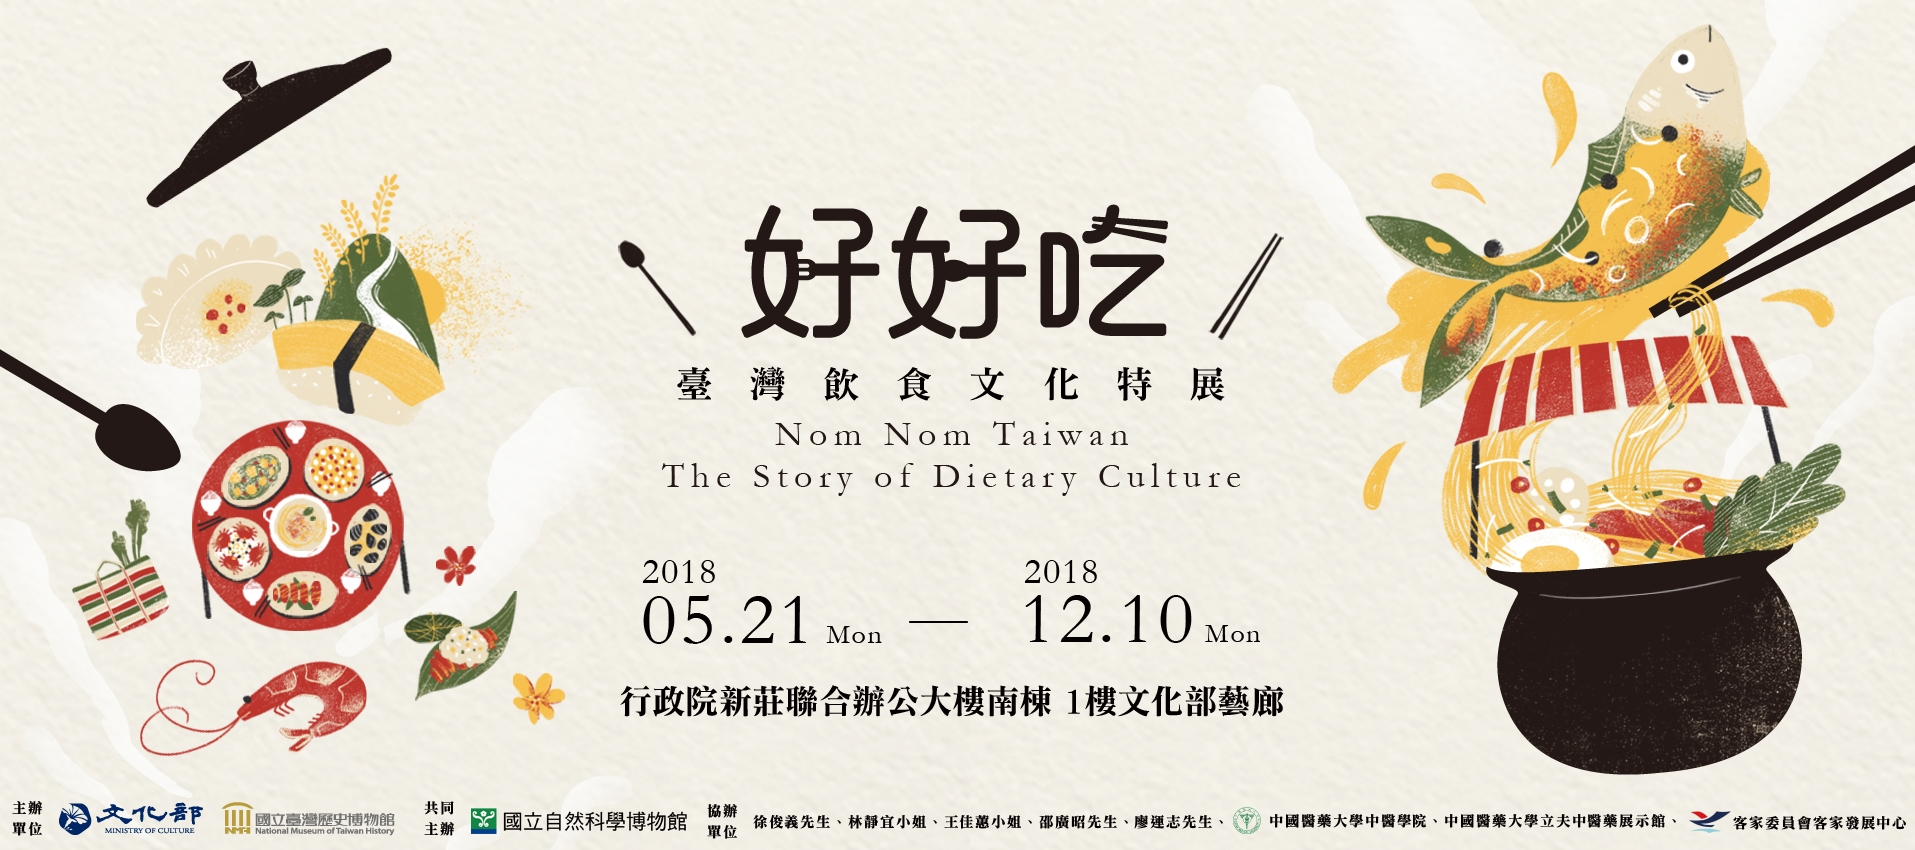 Nom Nom Taiwan: the Story of Dietary Culture